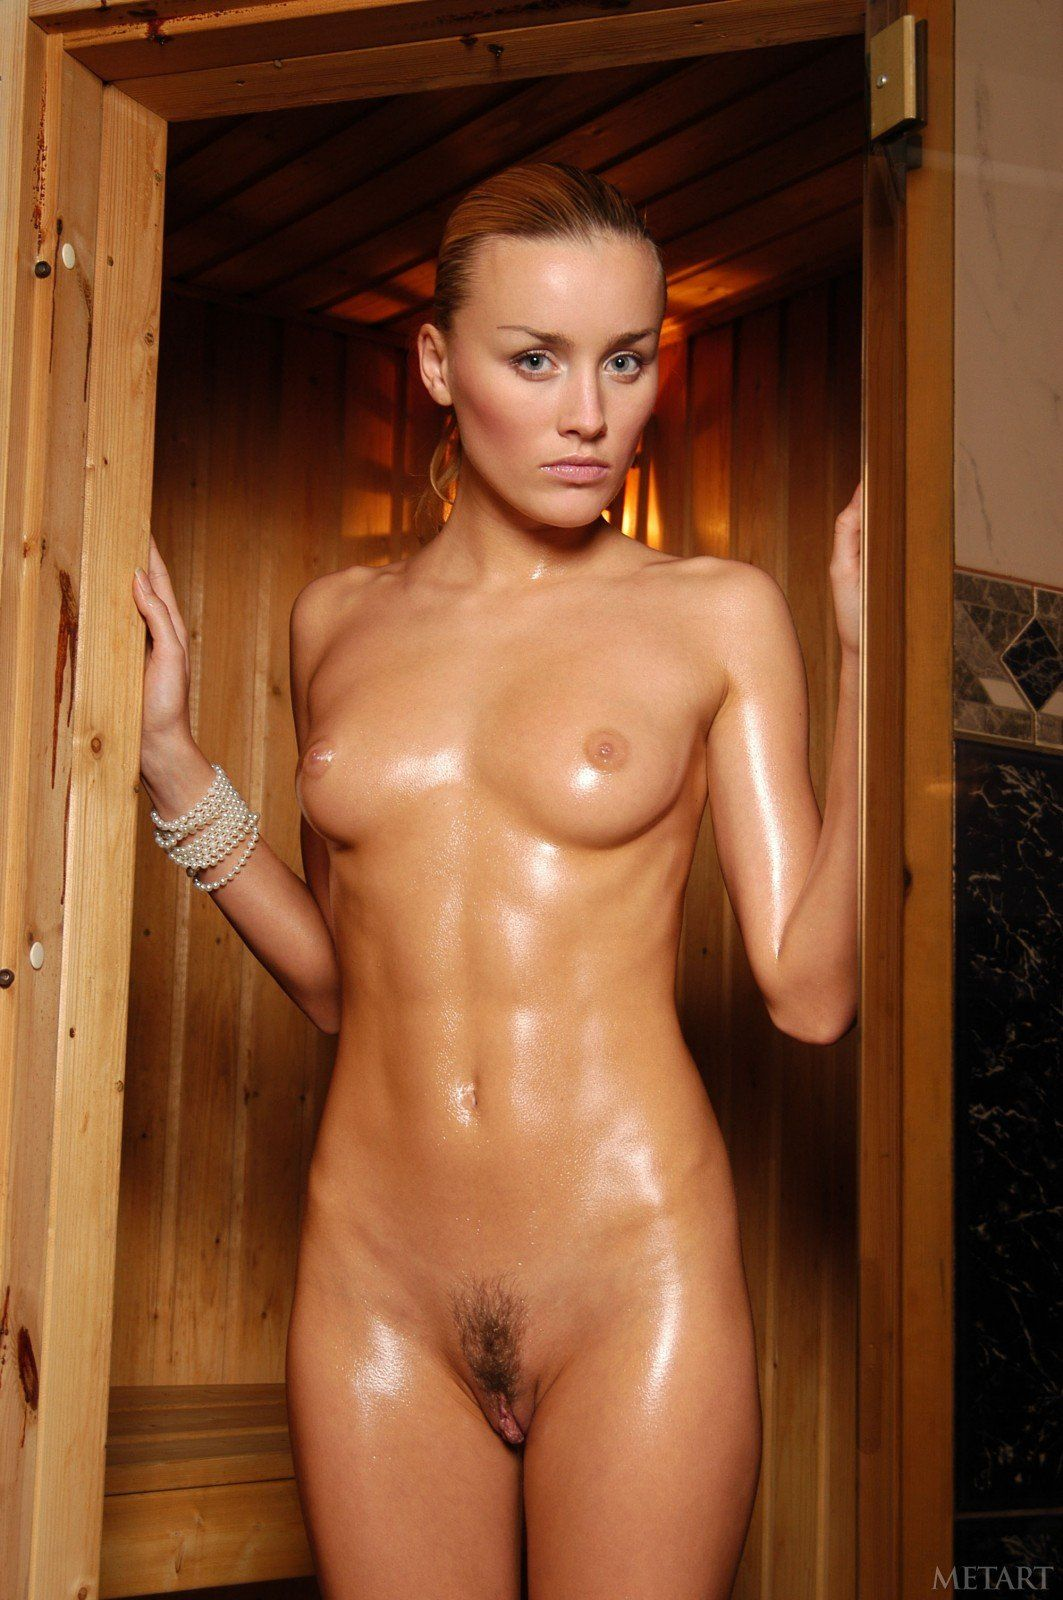 naked sauna for couple in lodz